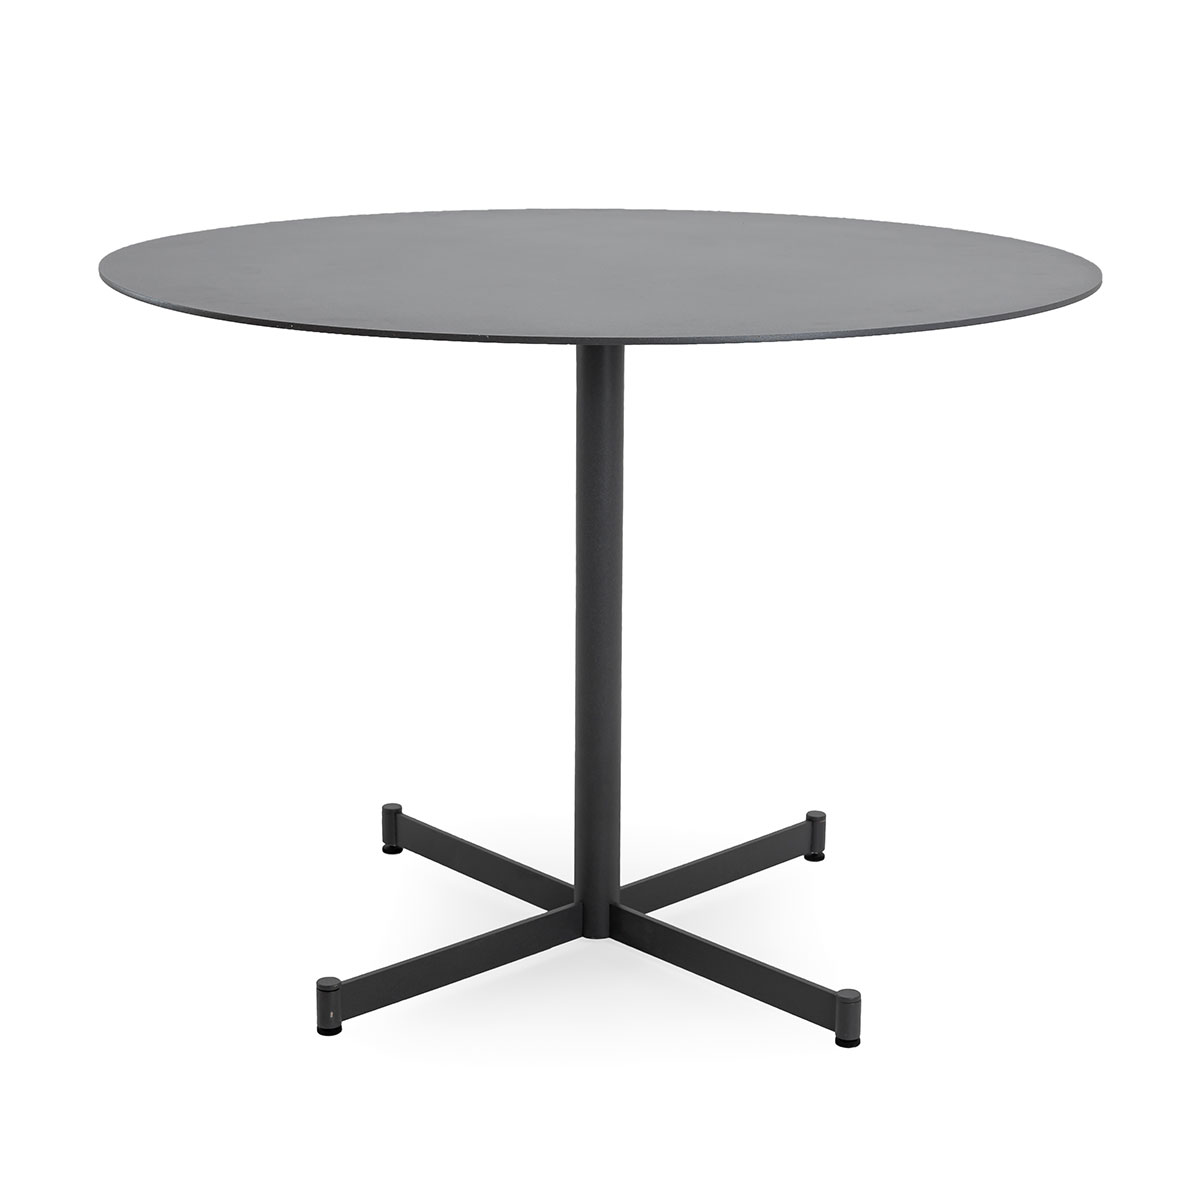 Round dining table Teodora Braid